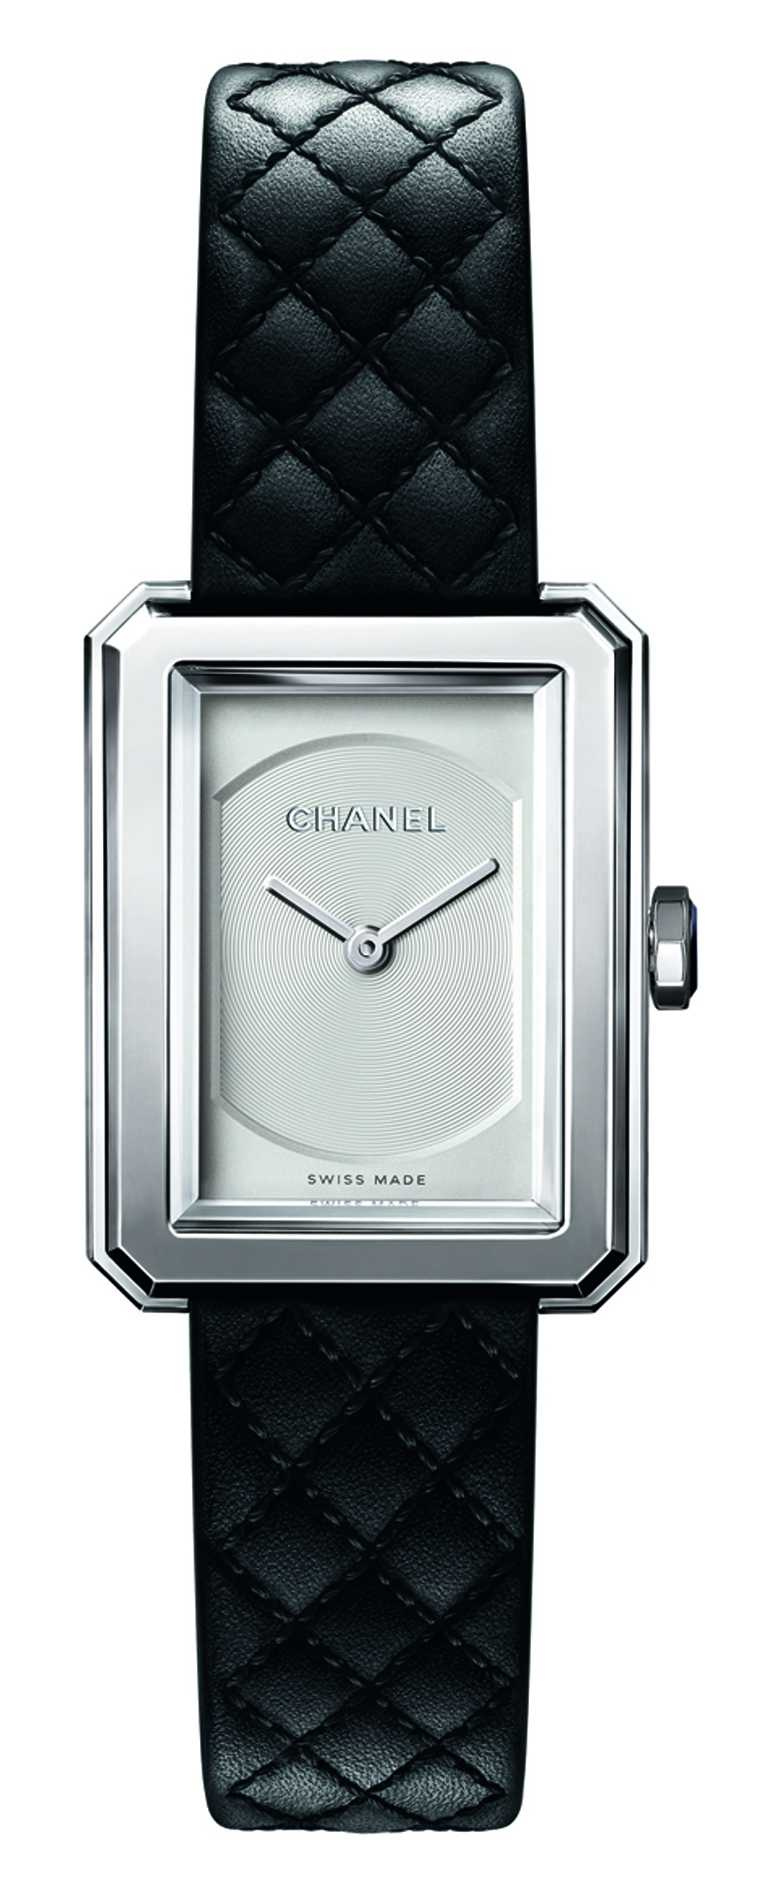 CHANEL「Boy·Friend」腕錶(小型款),27mm╱124,000元。(圖╱CHANEL提供)